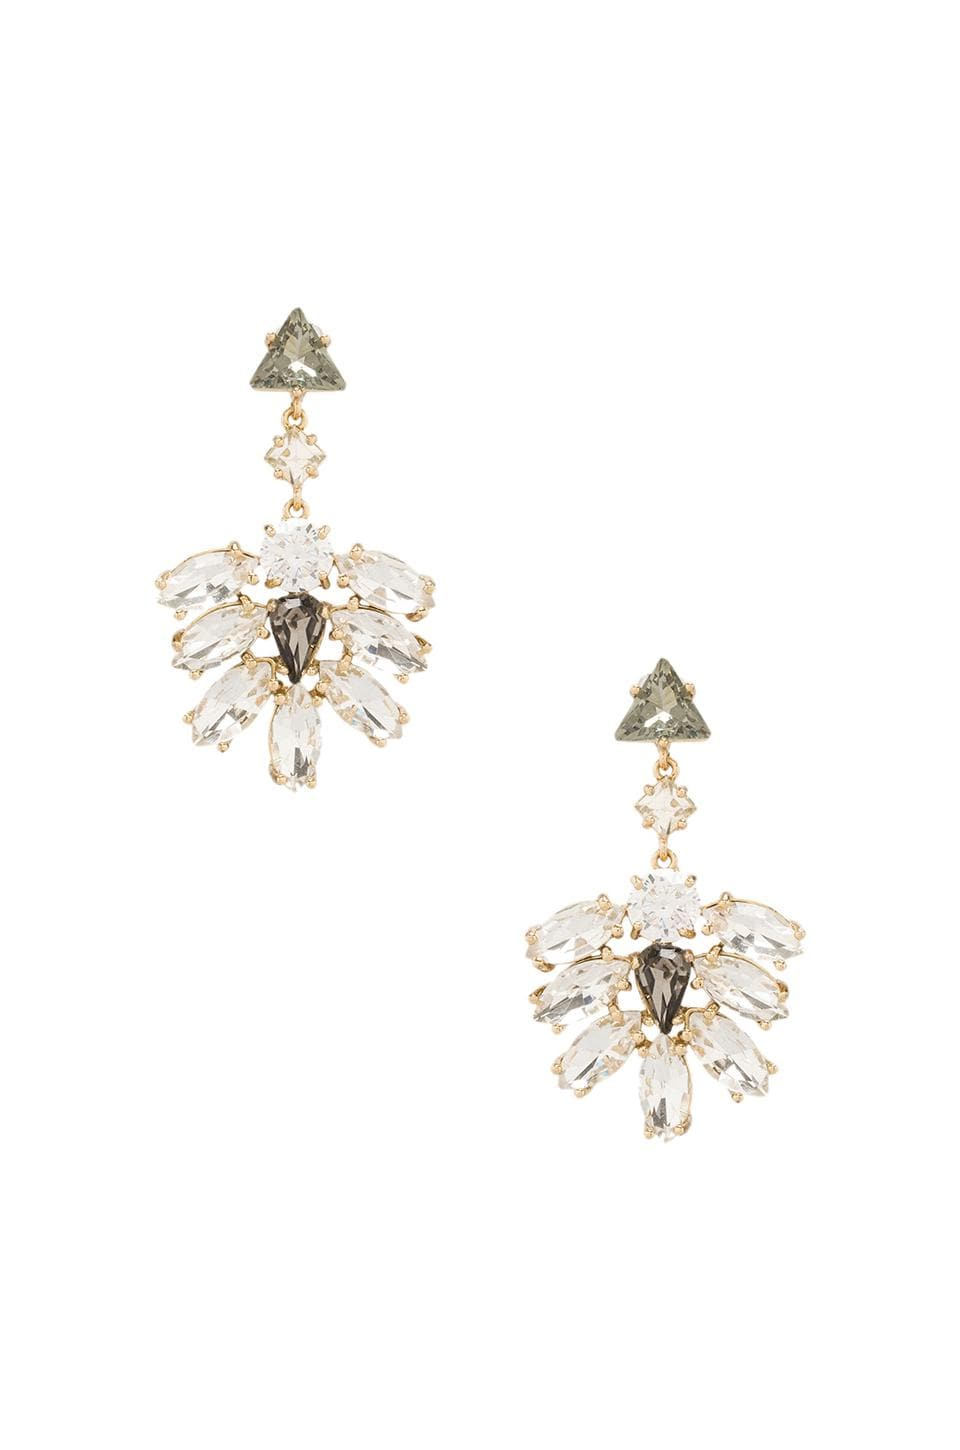 Juicy Couture Rhinestone Cluster Drop Earrings in Gold